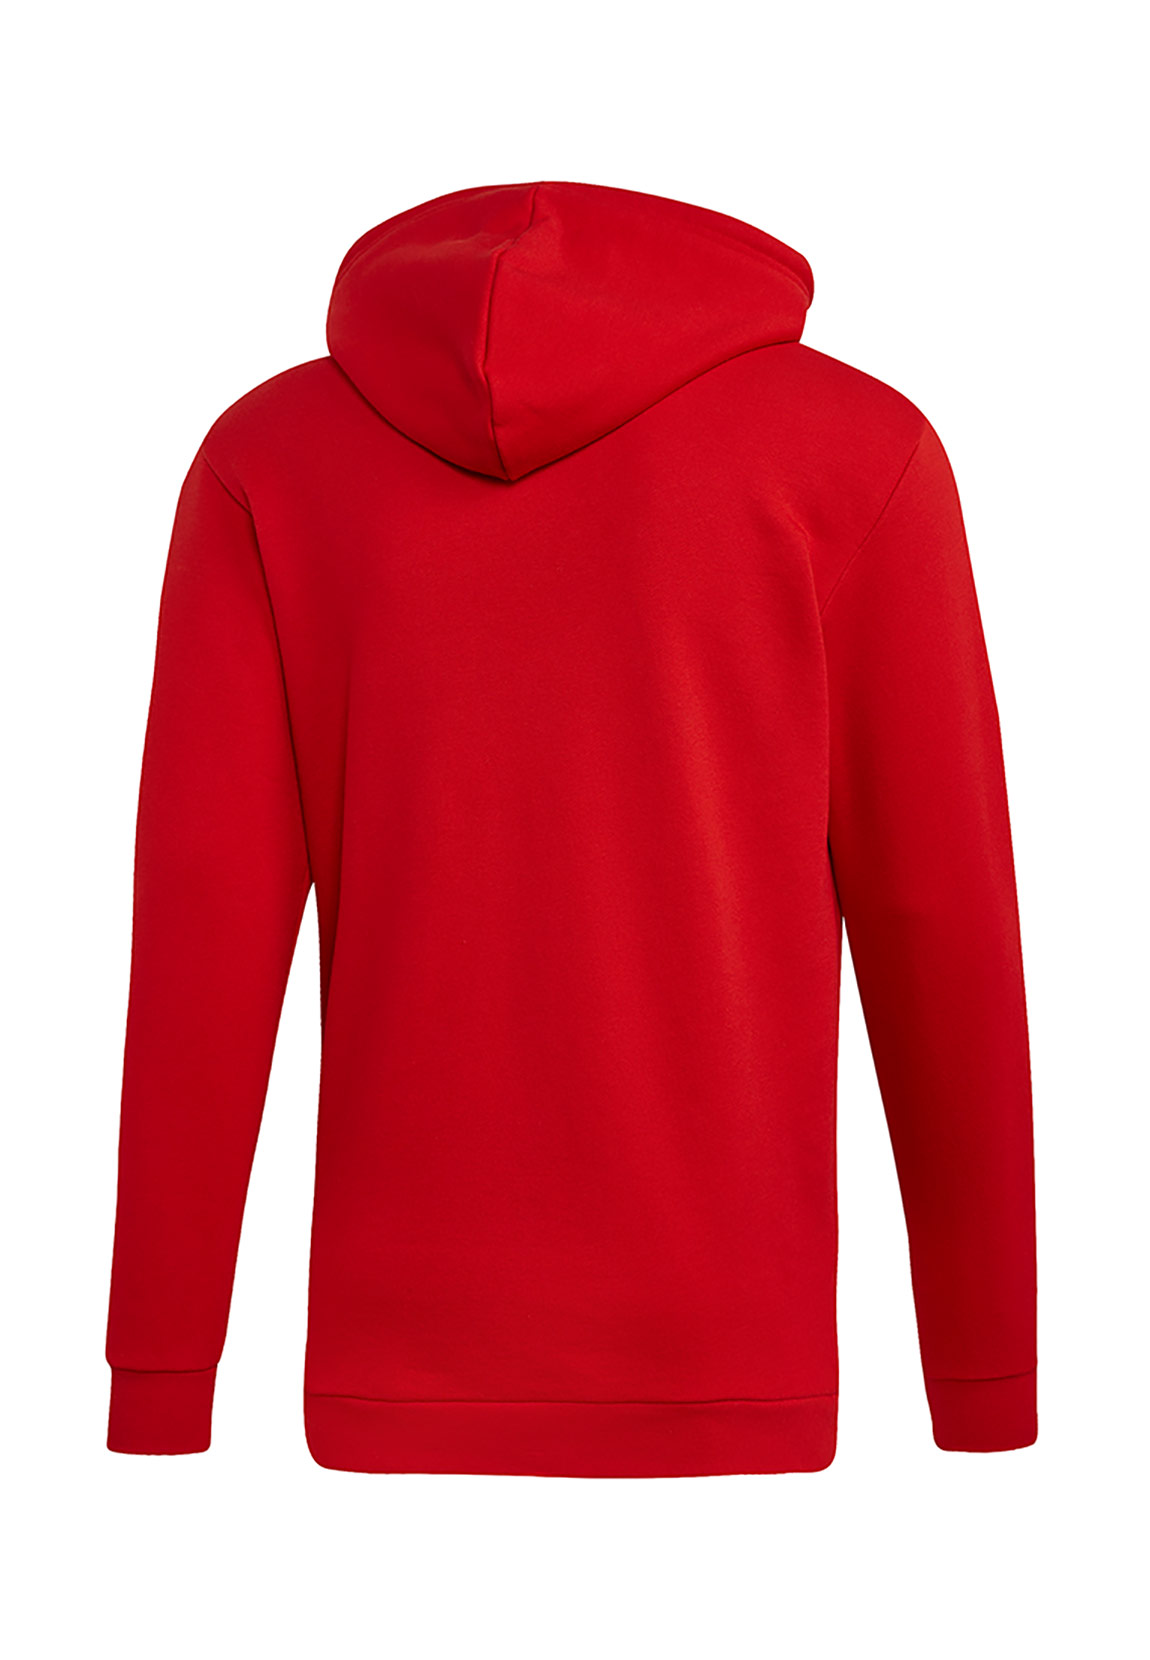 NEW WITH TAGS ADIDAS PULLOVER HOODIE RED EJ9680 FOR MEN | eBay